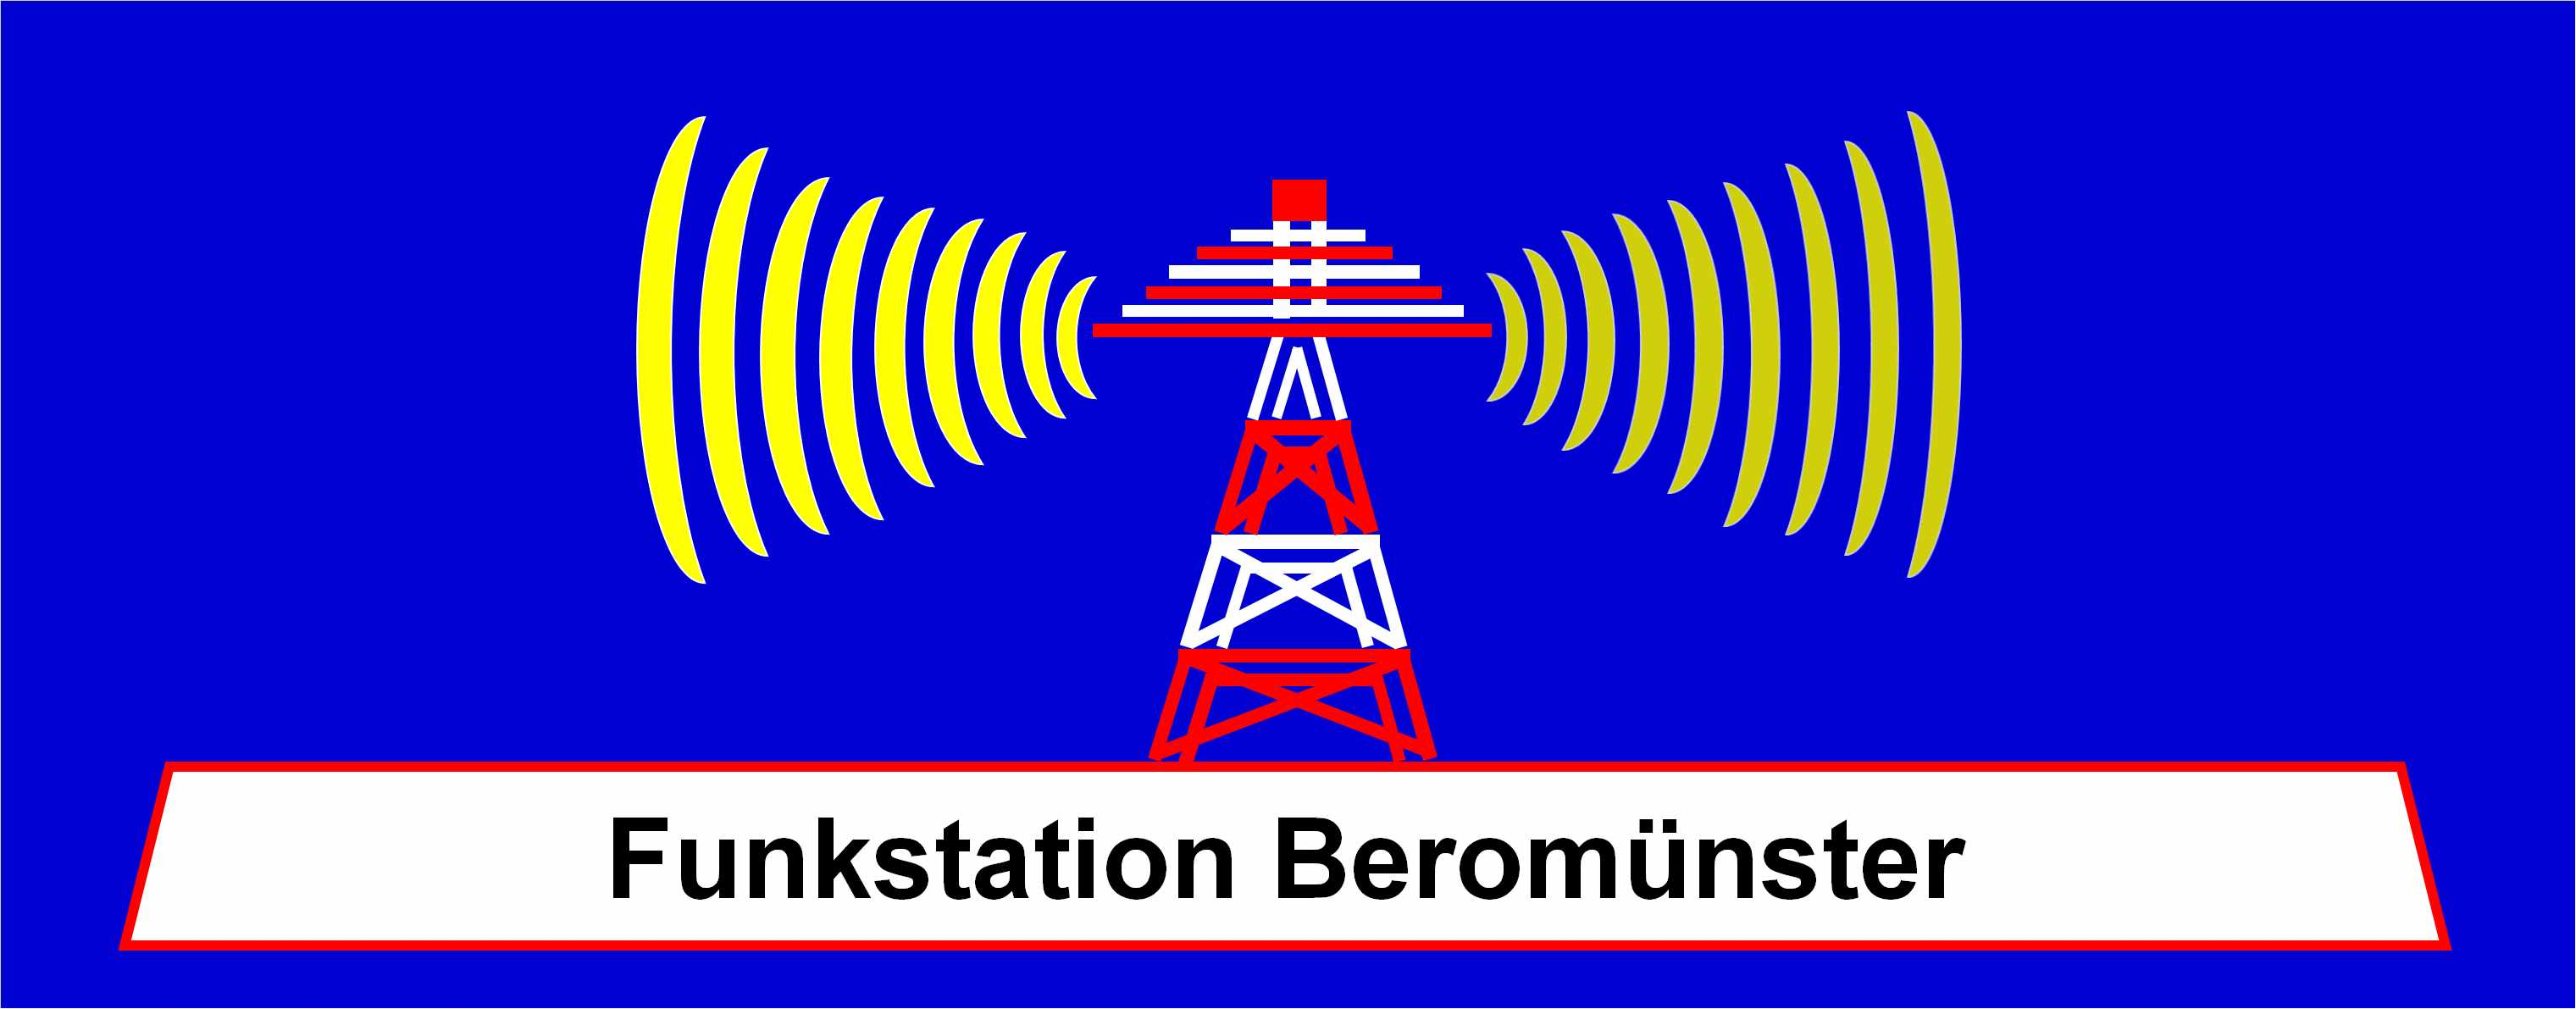 Funkstation Beromünster